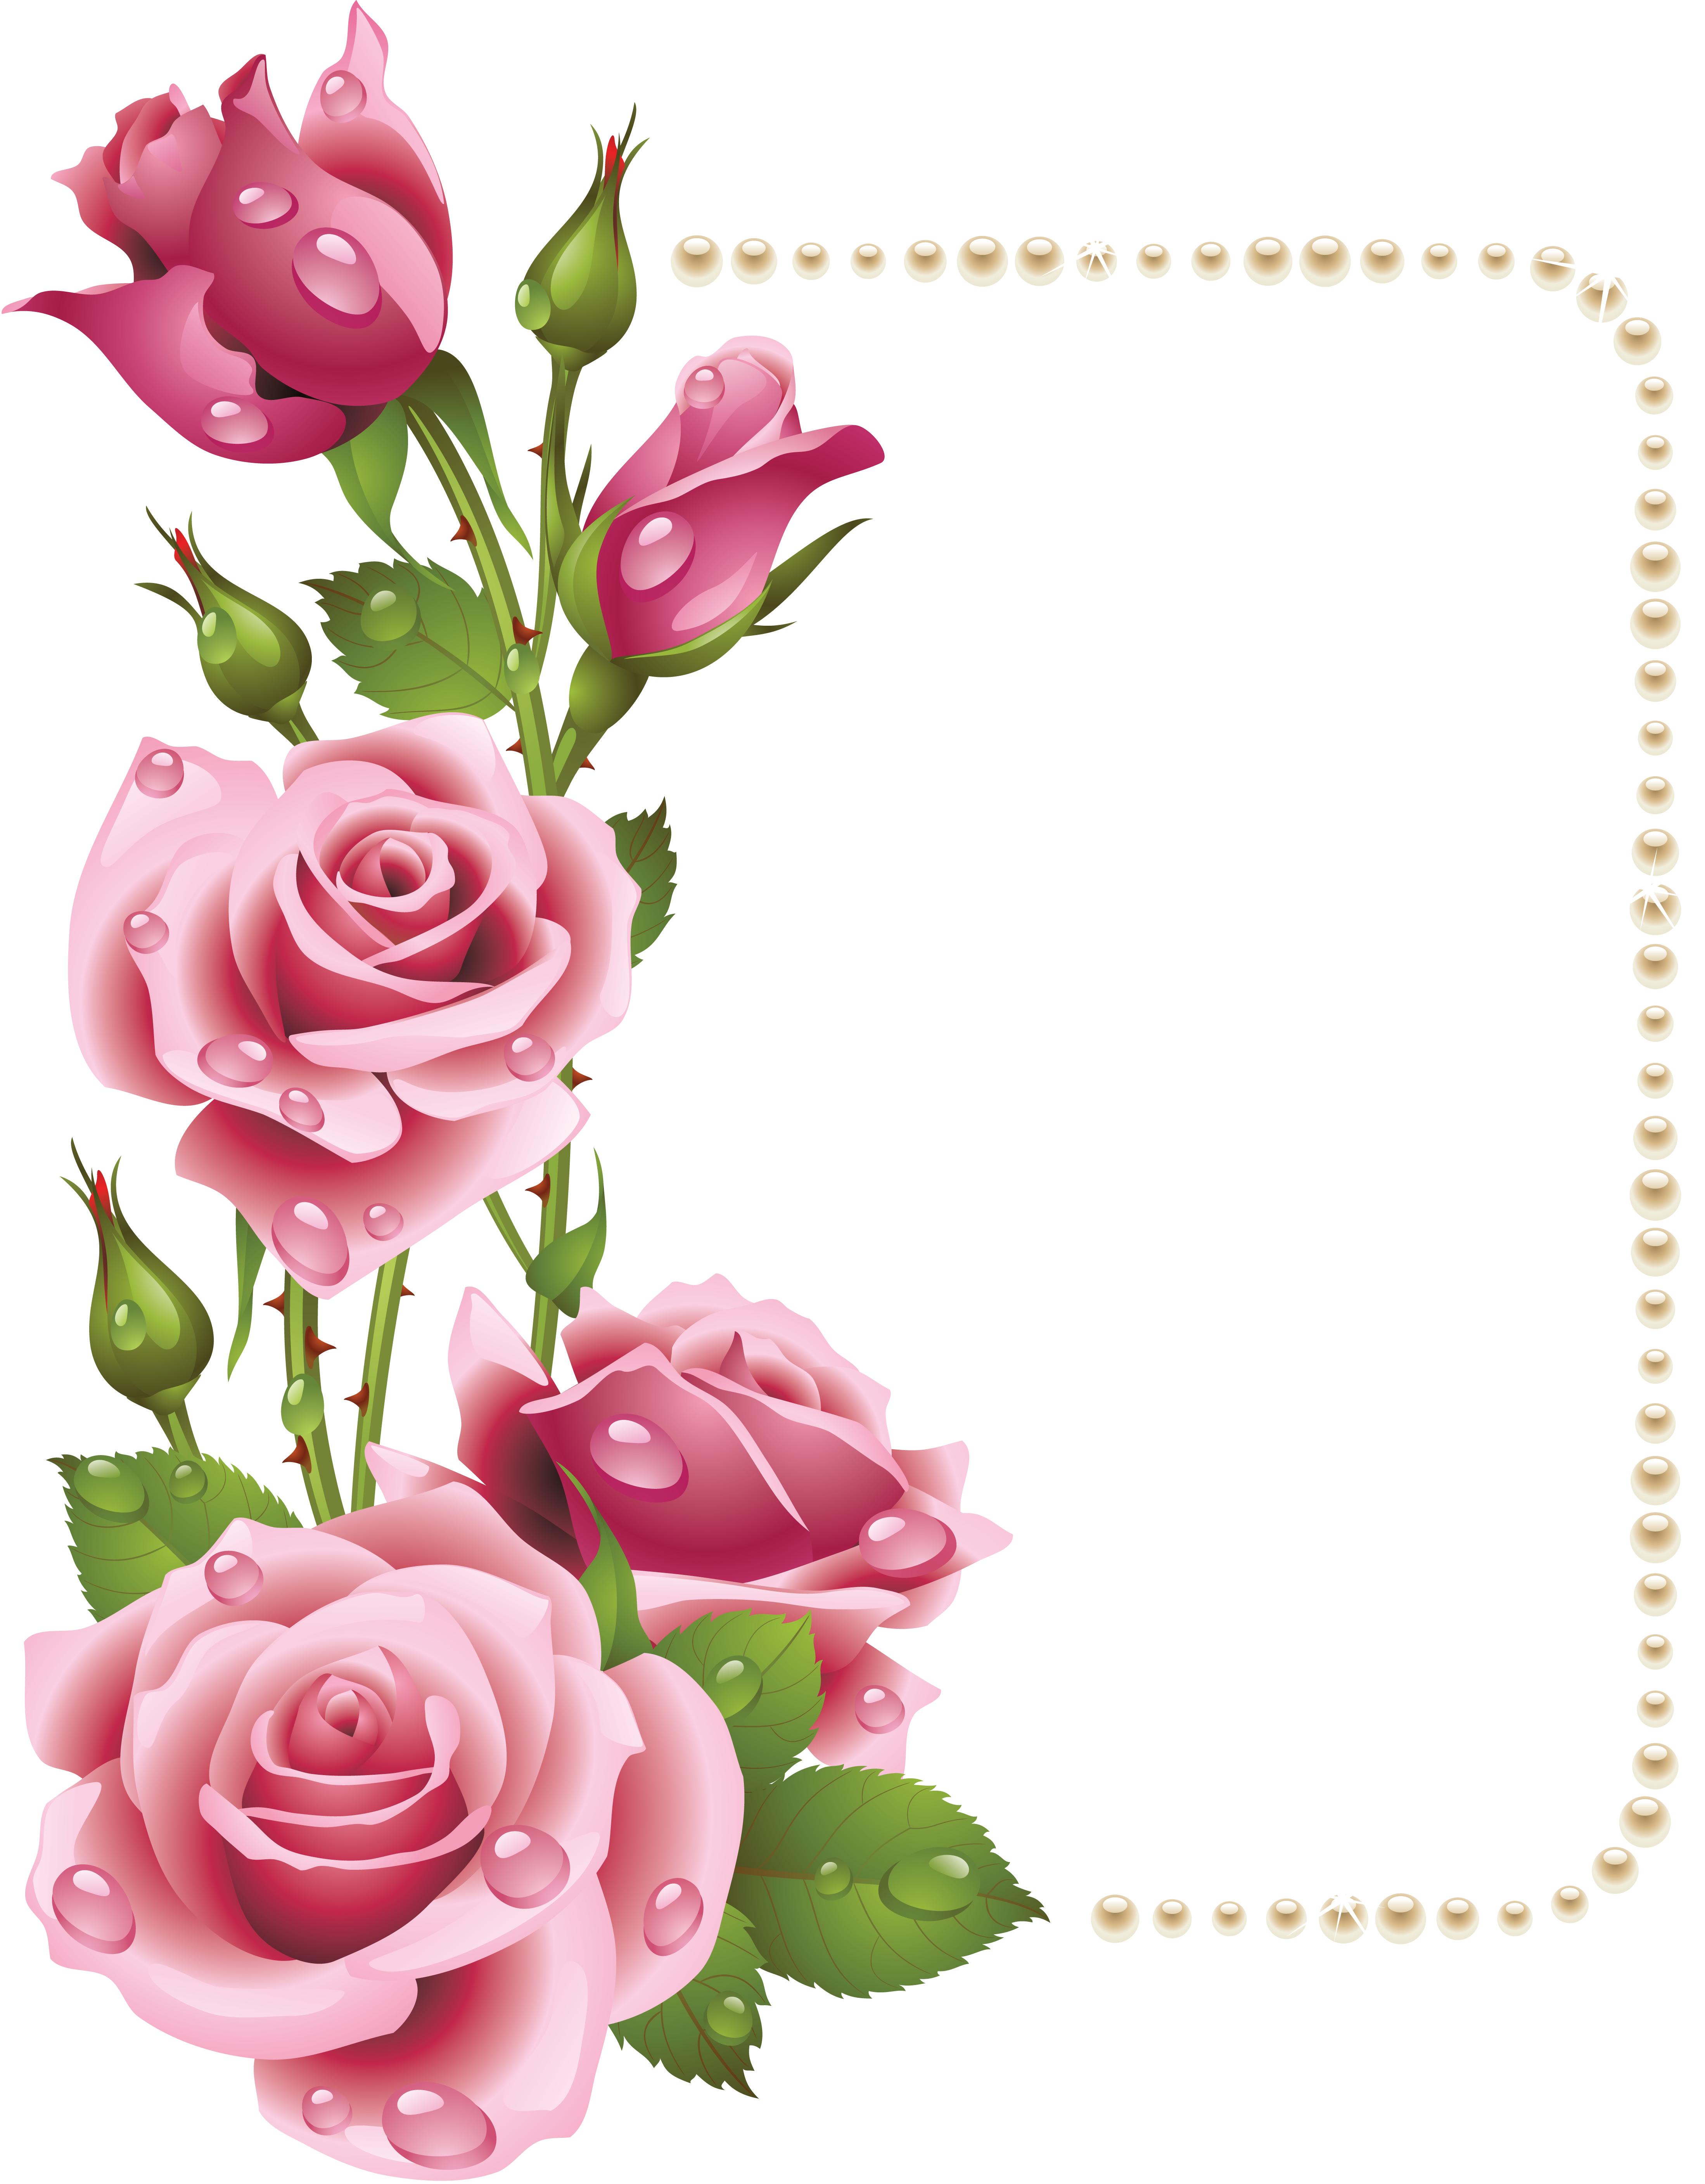 Rose clipart borders. Large transparent frame with